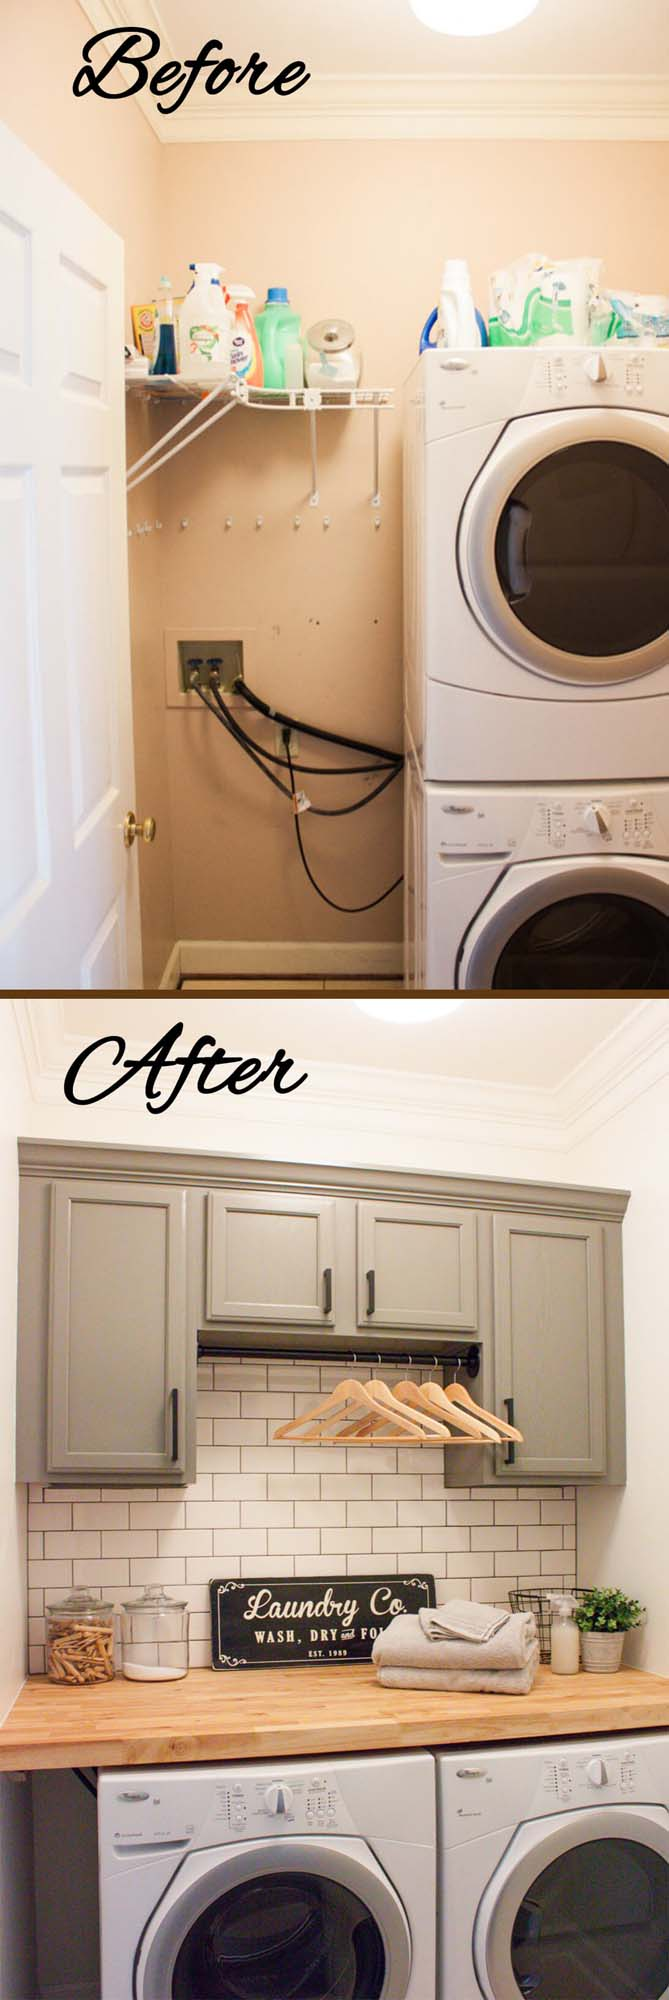 Stacked to Flat with Extra Storage #laundryroom #makeover #decorhomeideas